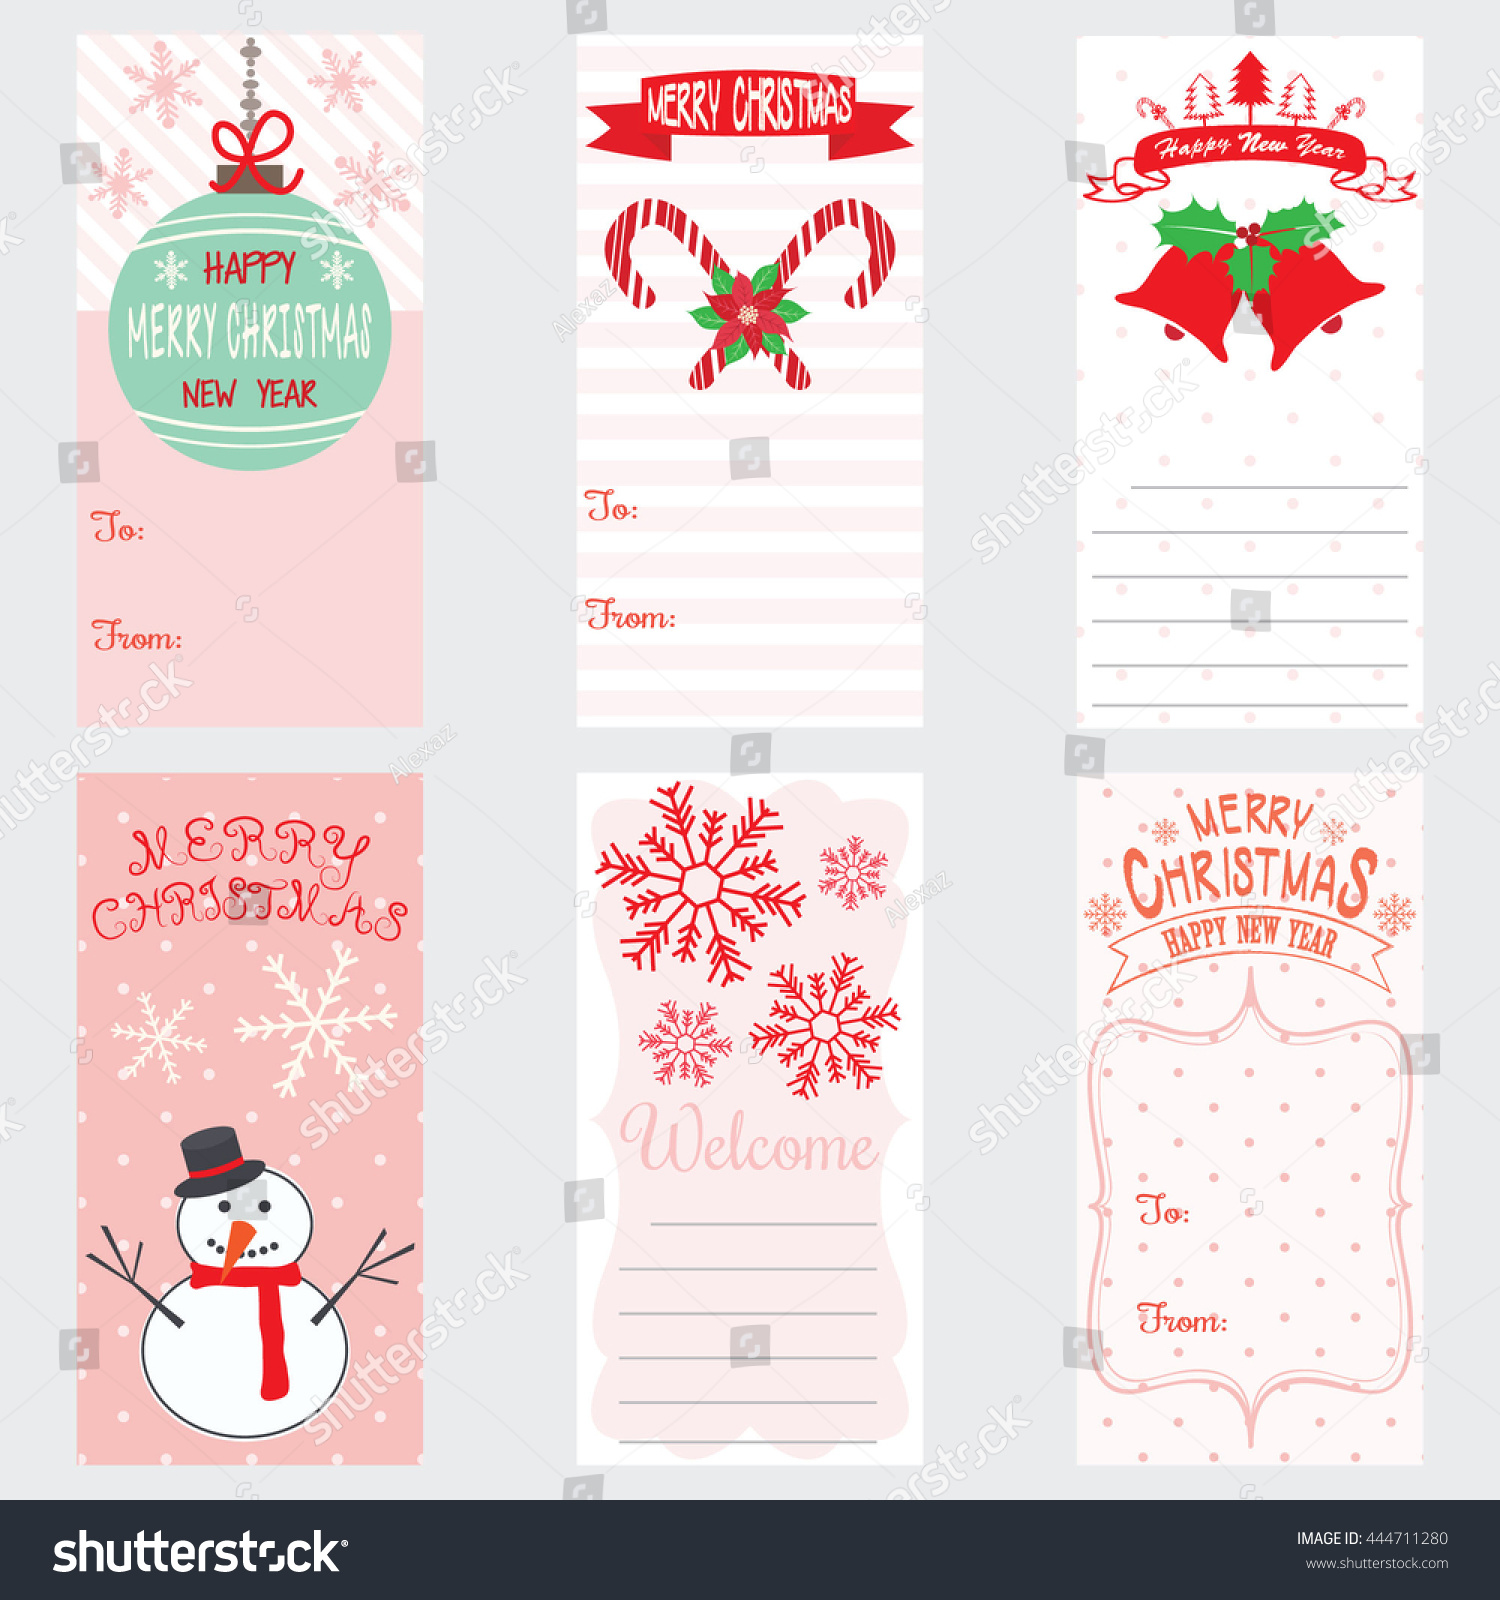 Merry christmas happy new year card christmas stock vector royalty merry christmas and happy new year cardristmas invitationristmas greeting card template m4hsunfo